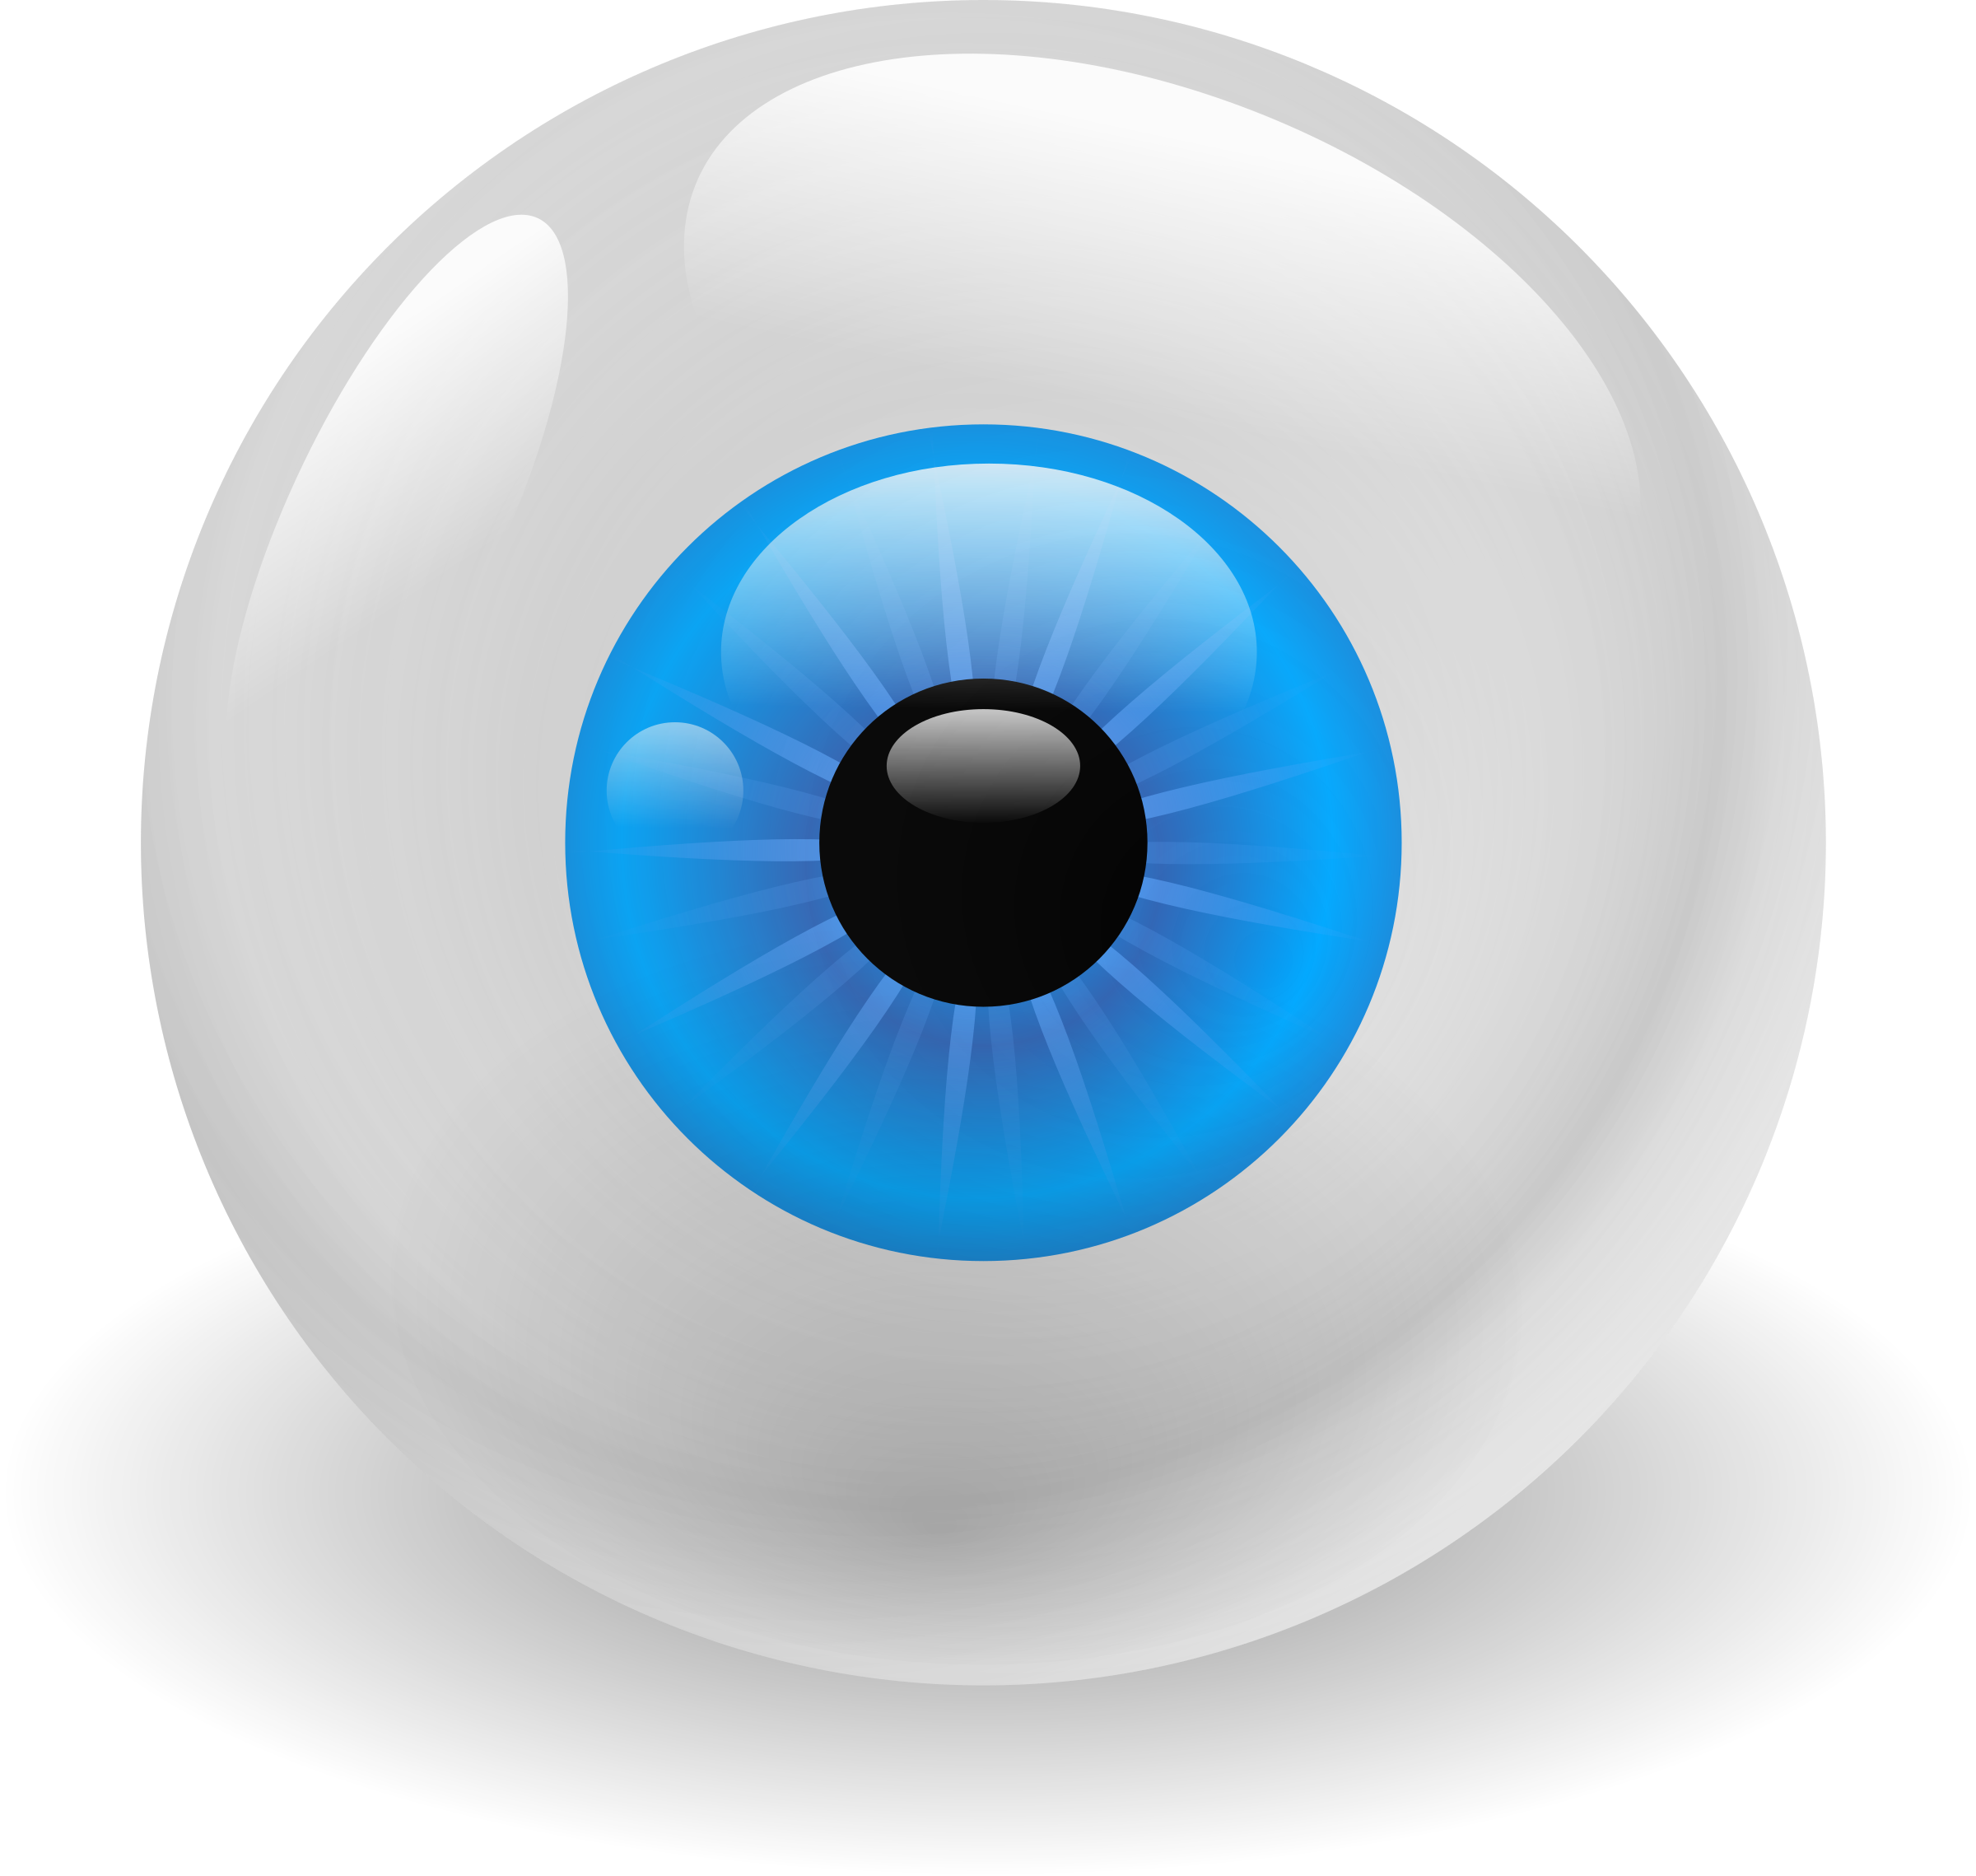 eyeball png